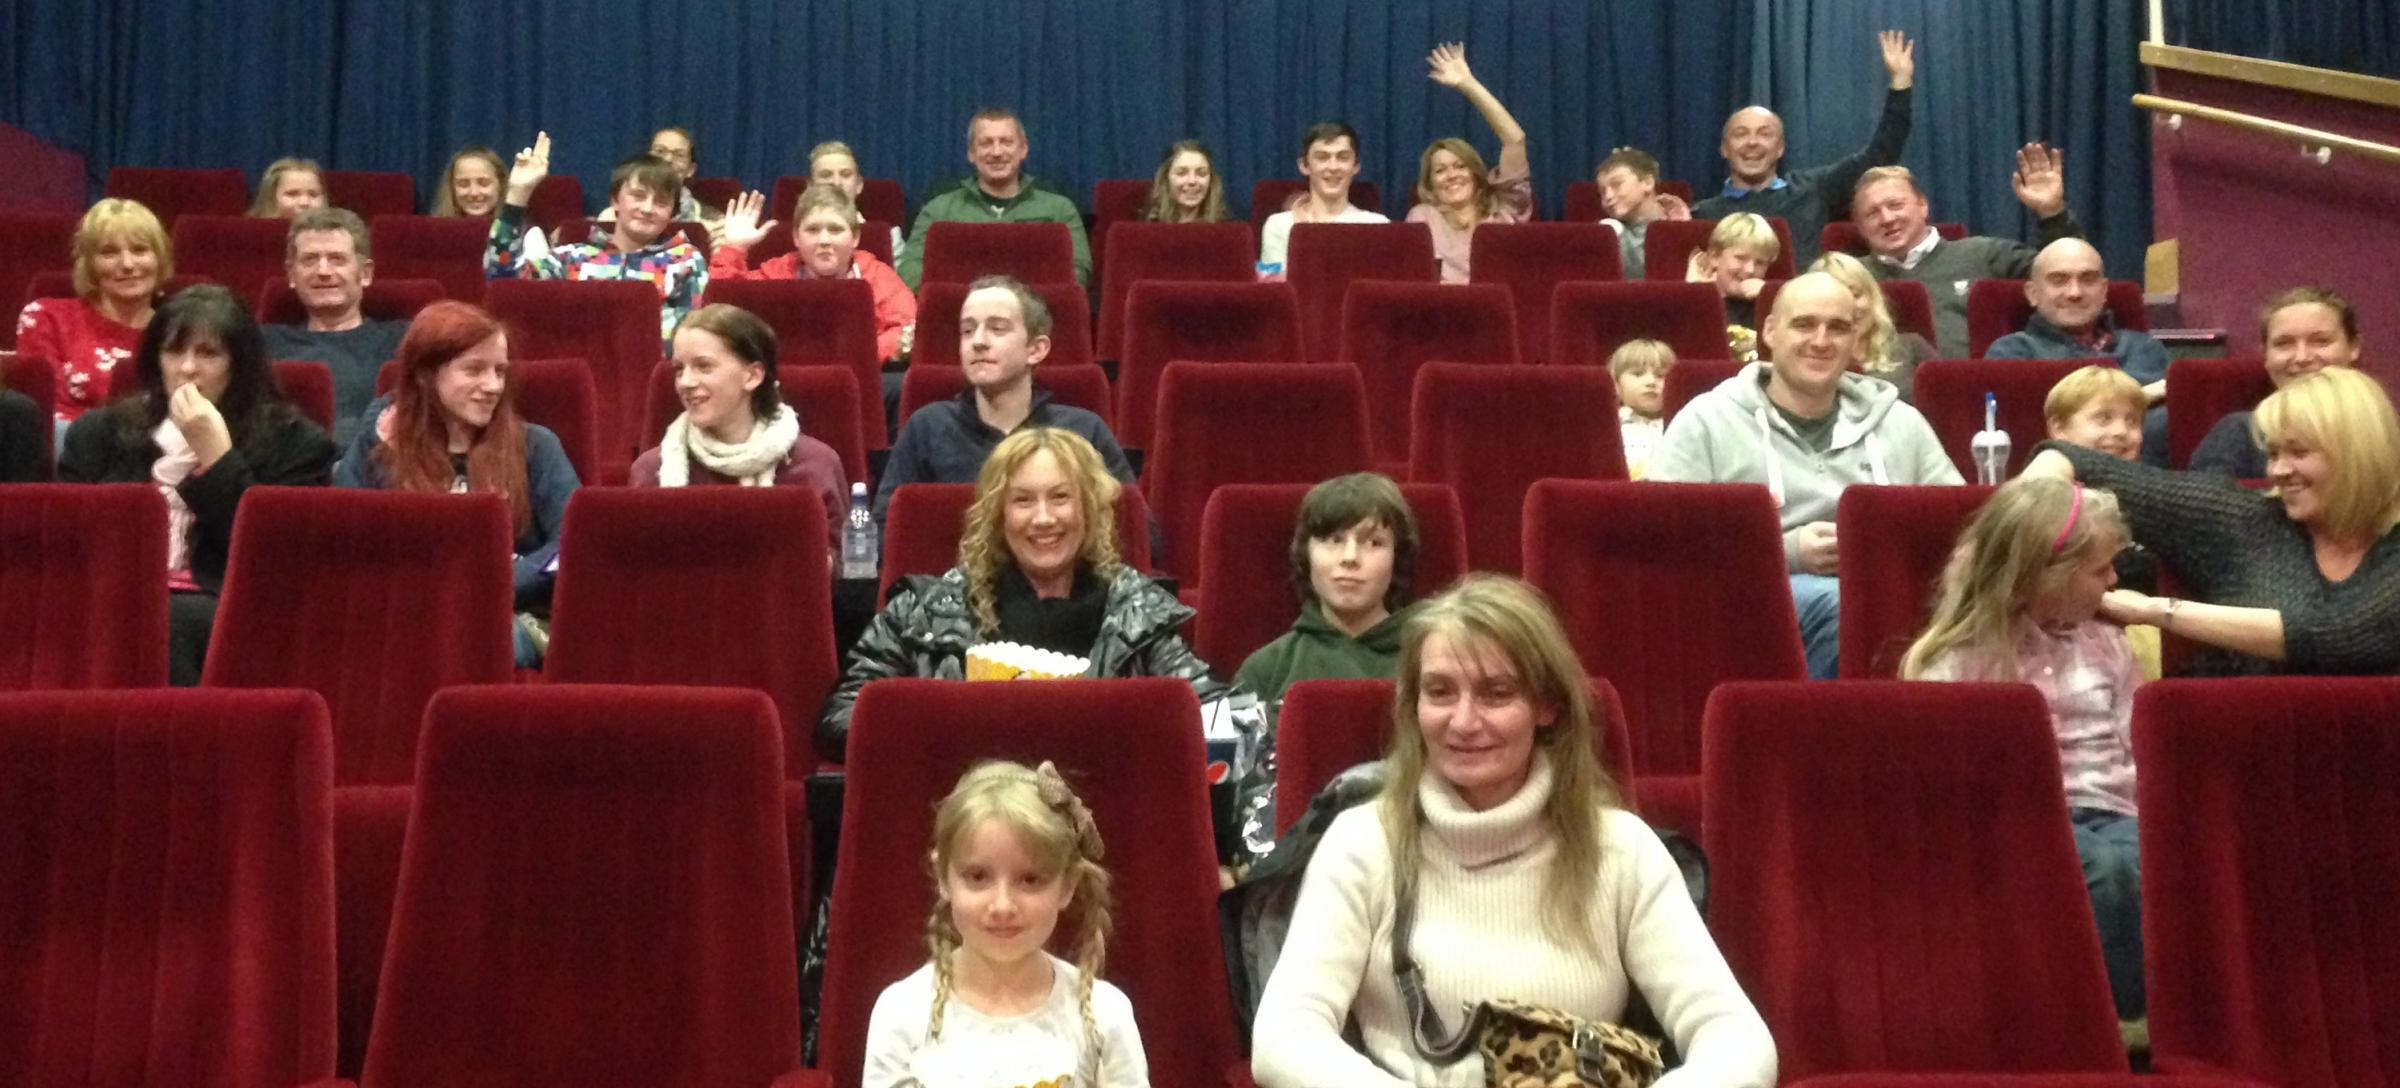 Second heritage film night planned in Colne